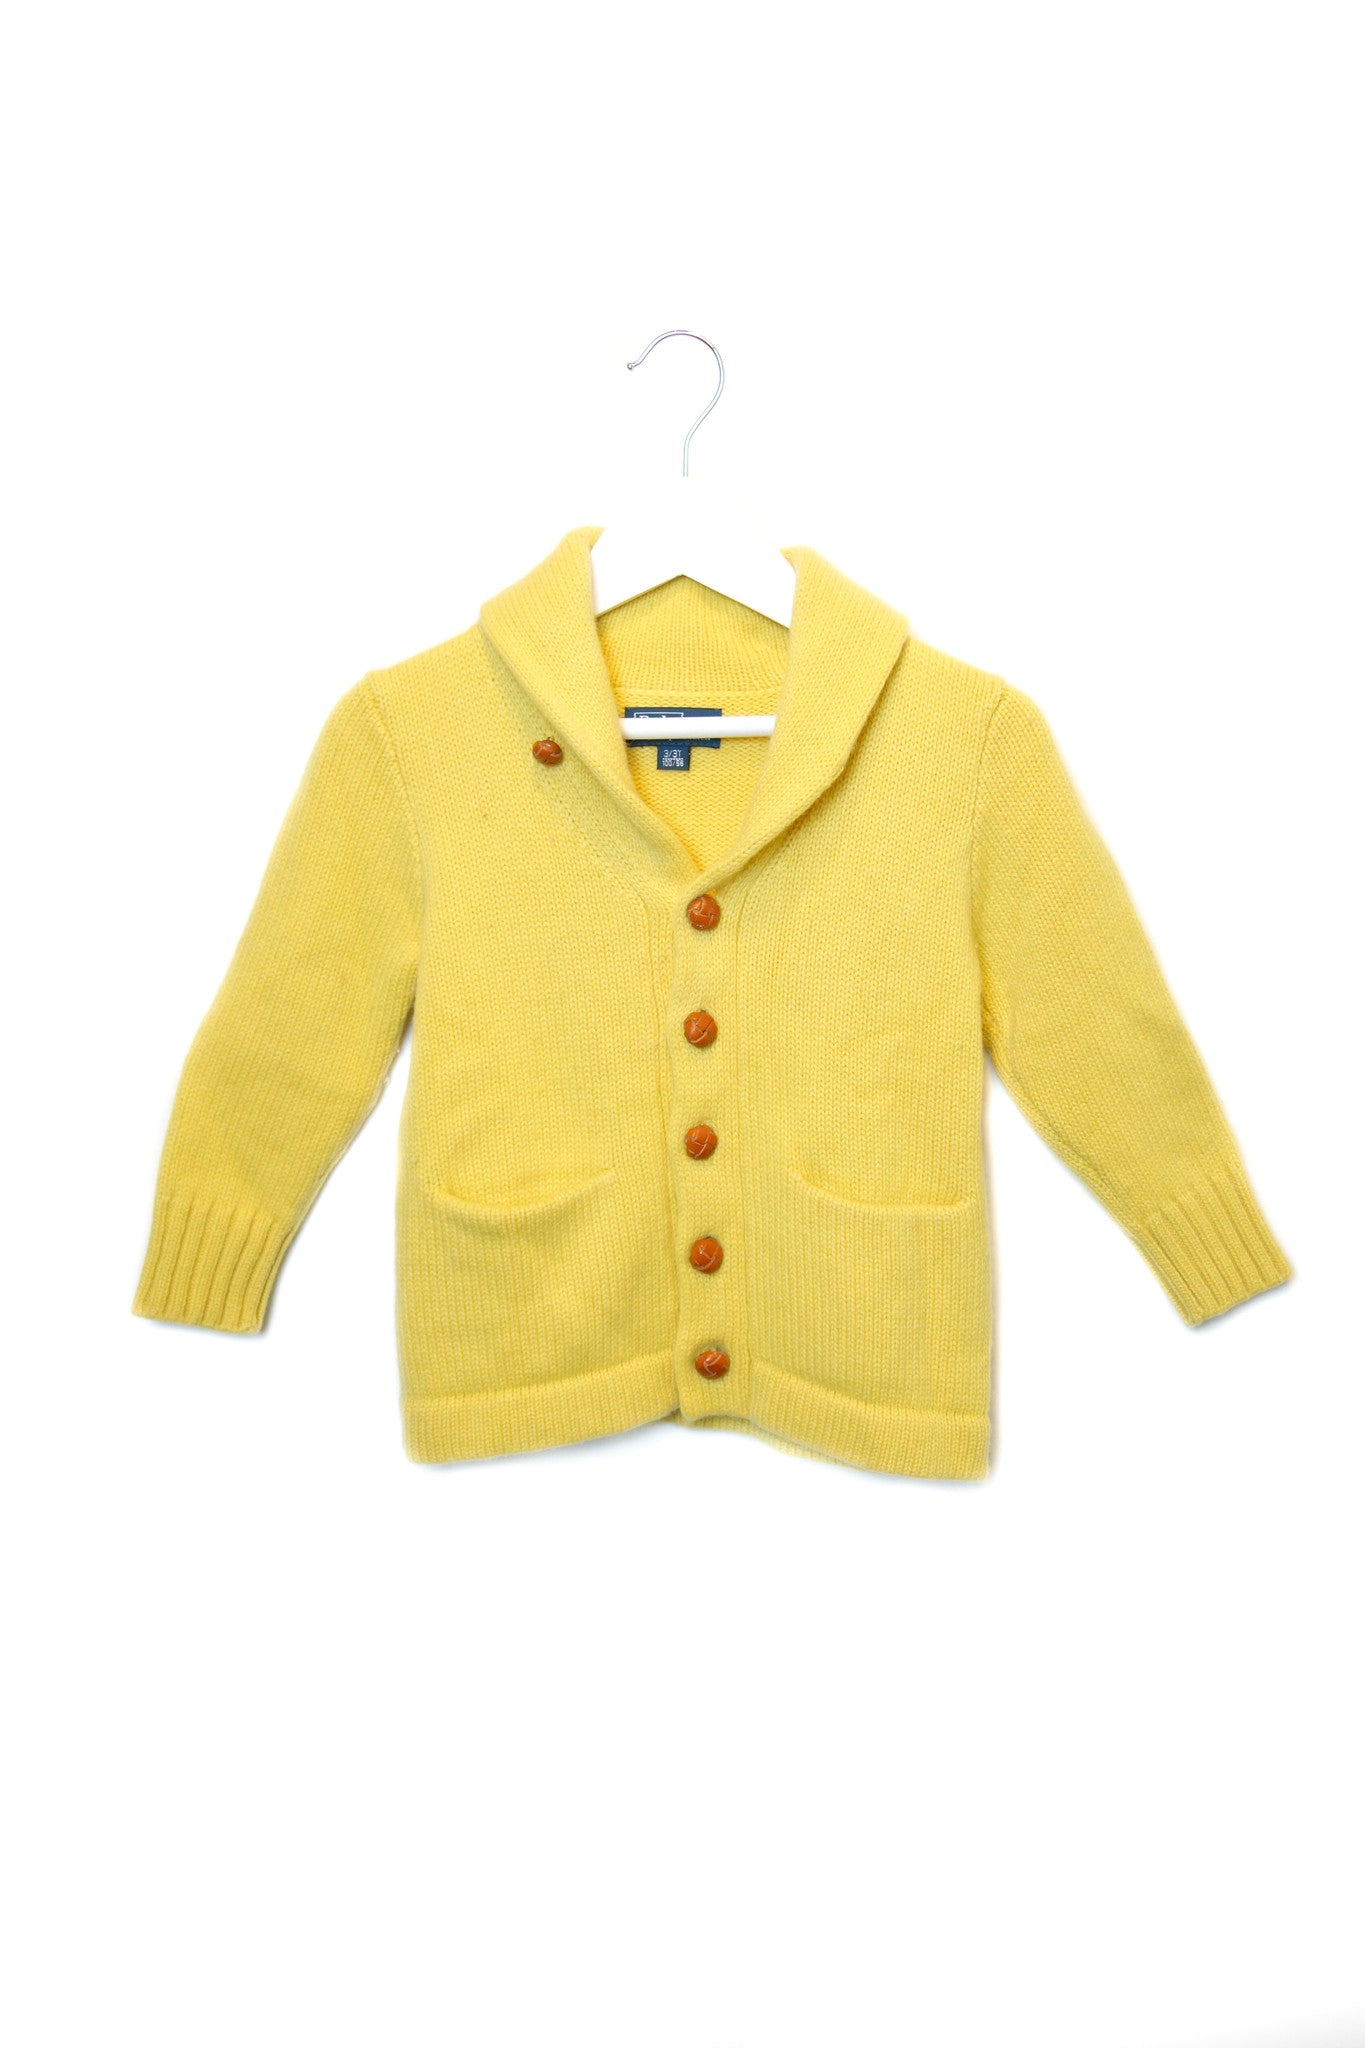 10001766 Polo Ralph Lauren Kids~Cardigan 3T at Retykle